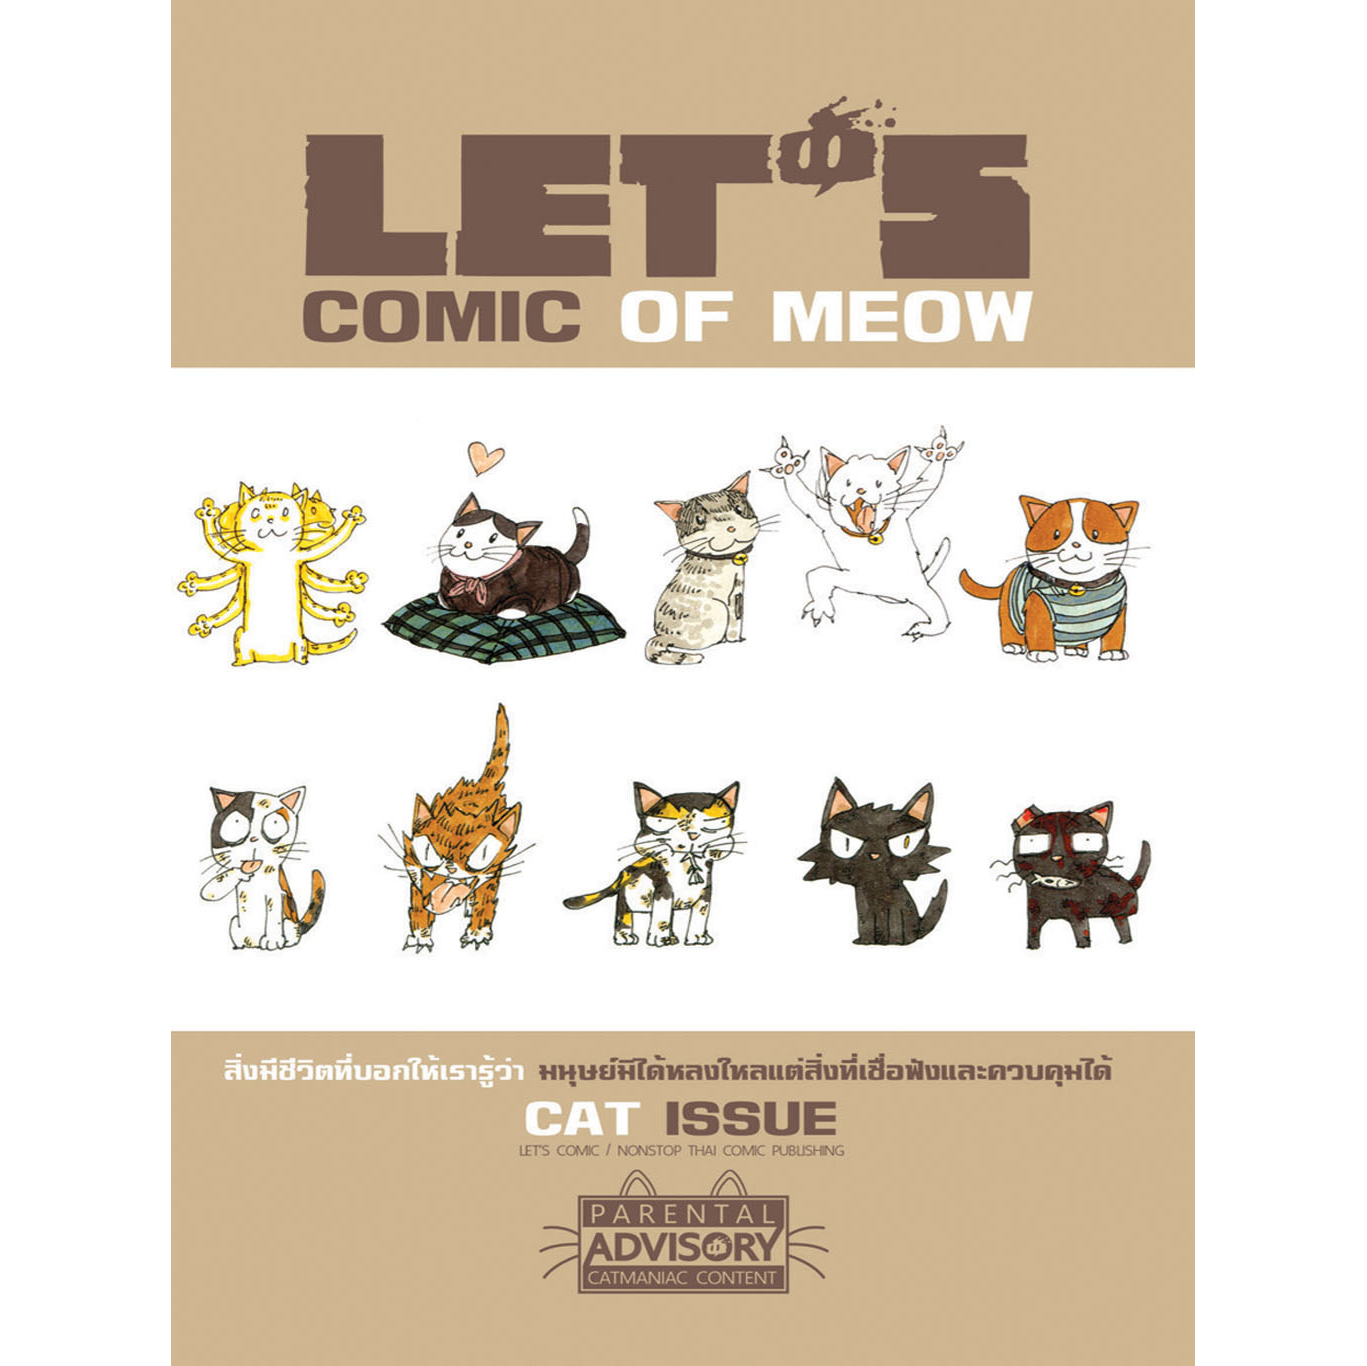 LET'S Comic Of Meow - Cat Issue